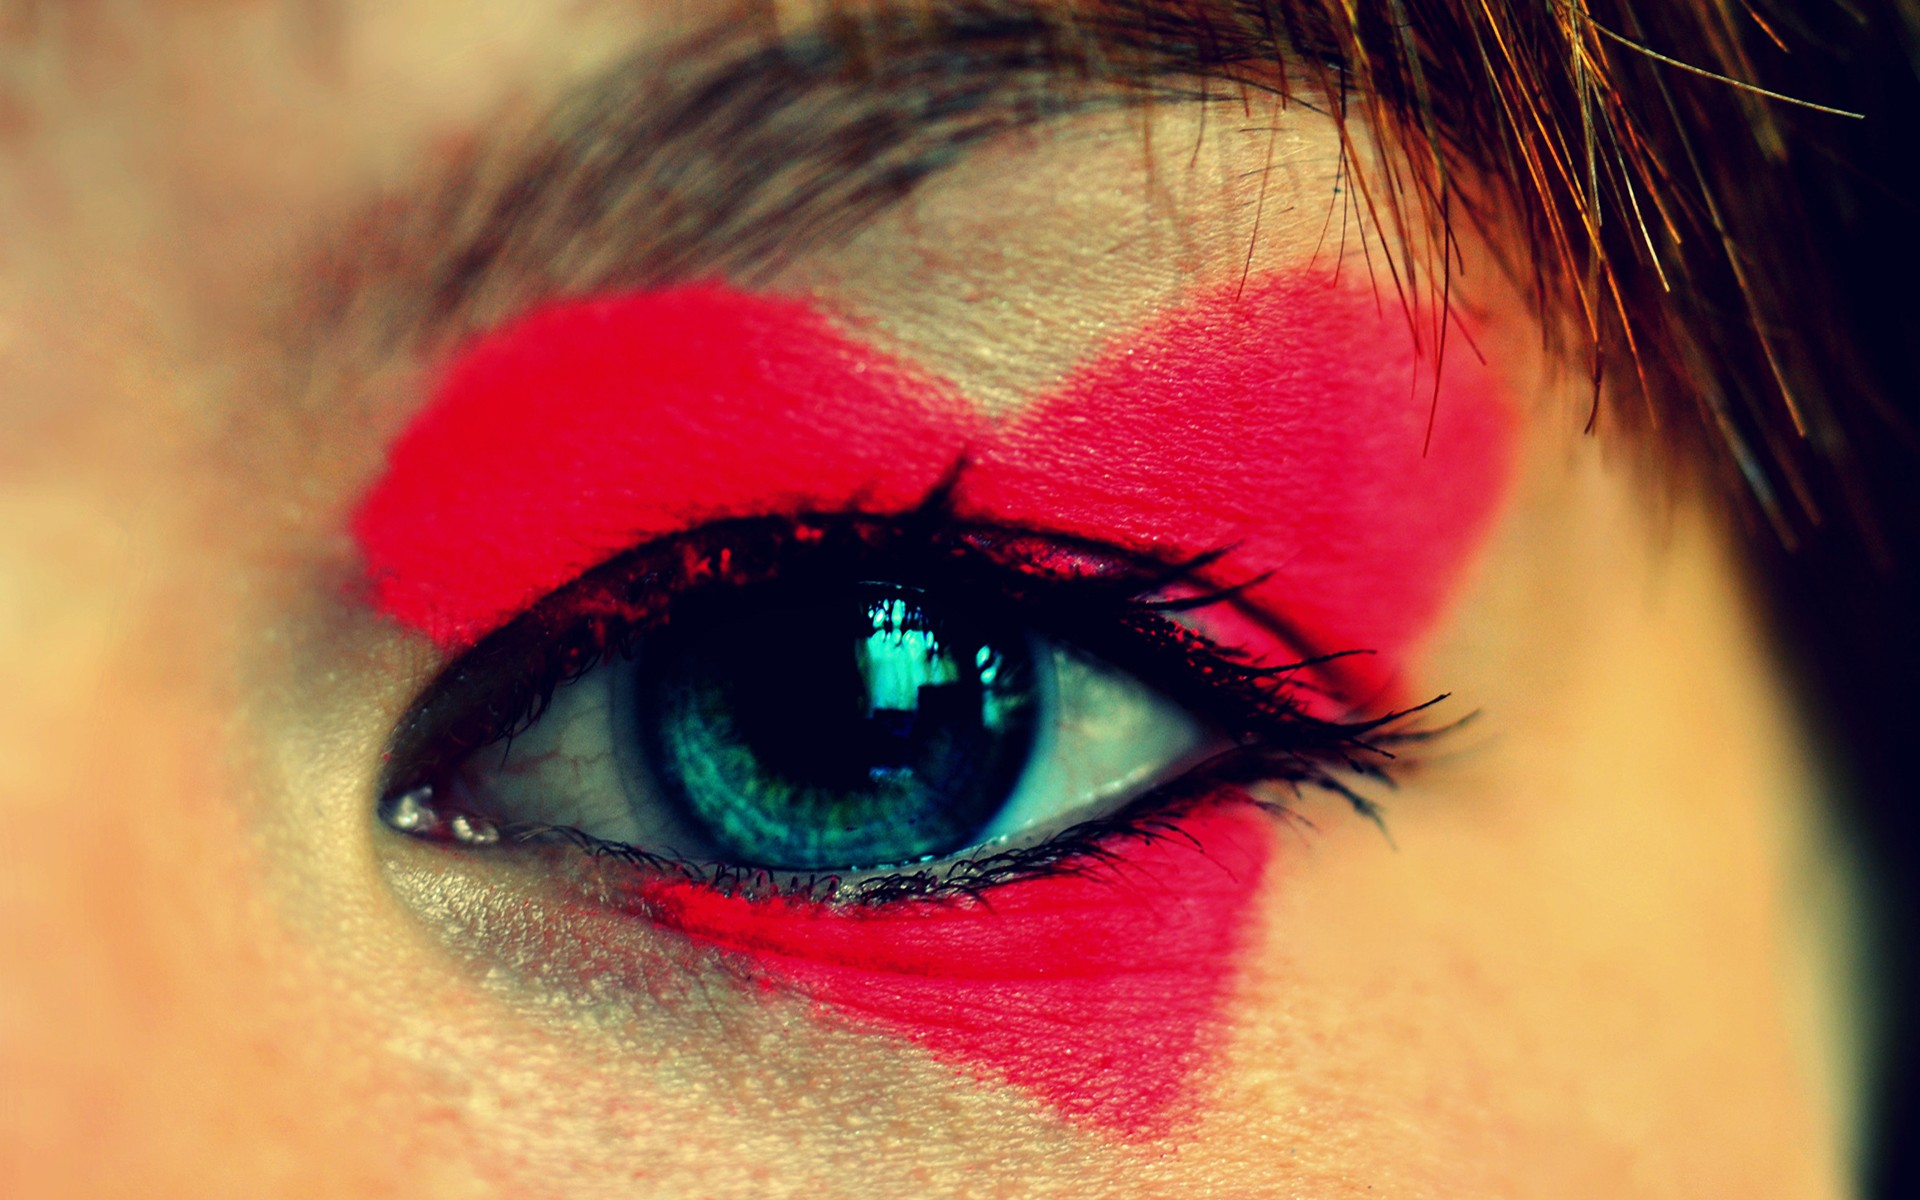 Image Red Heart Womens Eye Make Up Wallpapers And Stock Photos